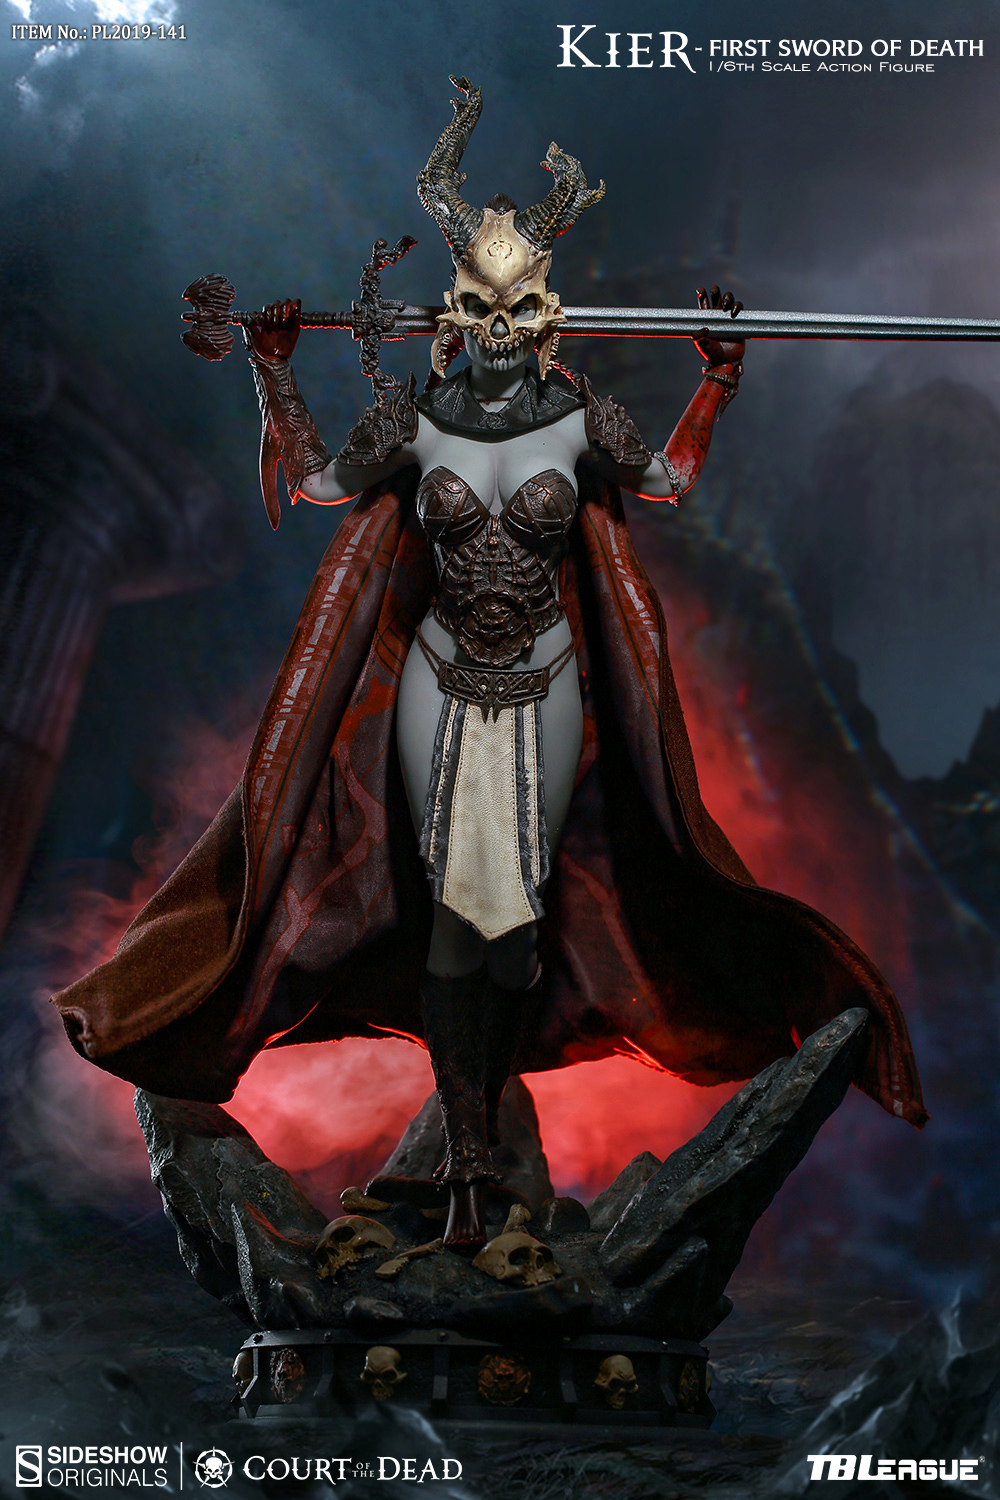 tbleague - NEW PRODUCT: TBLeague & Sideshow: 1/6 Court of the Dead - Valkyrie Cole / Kier movable doll (PL2019-141) 16260310